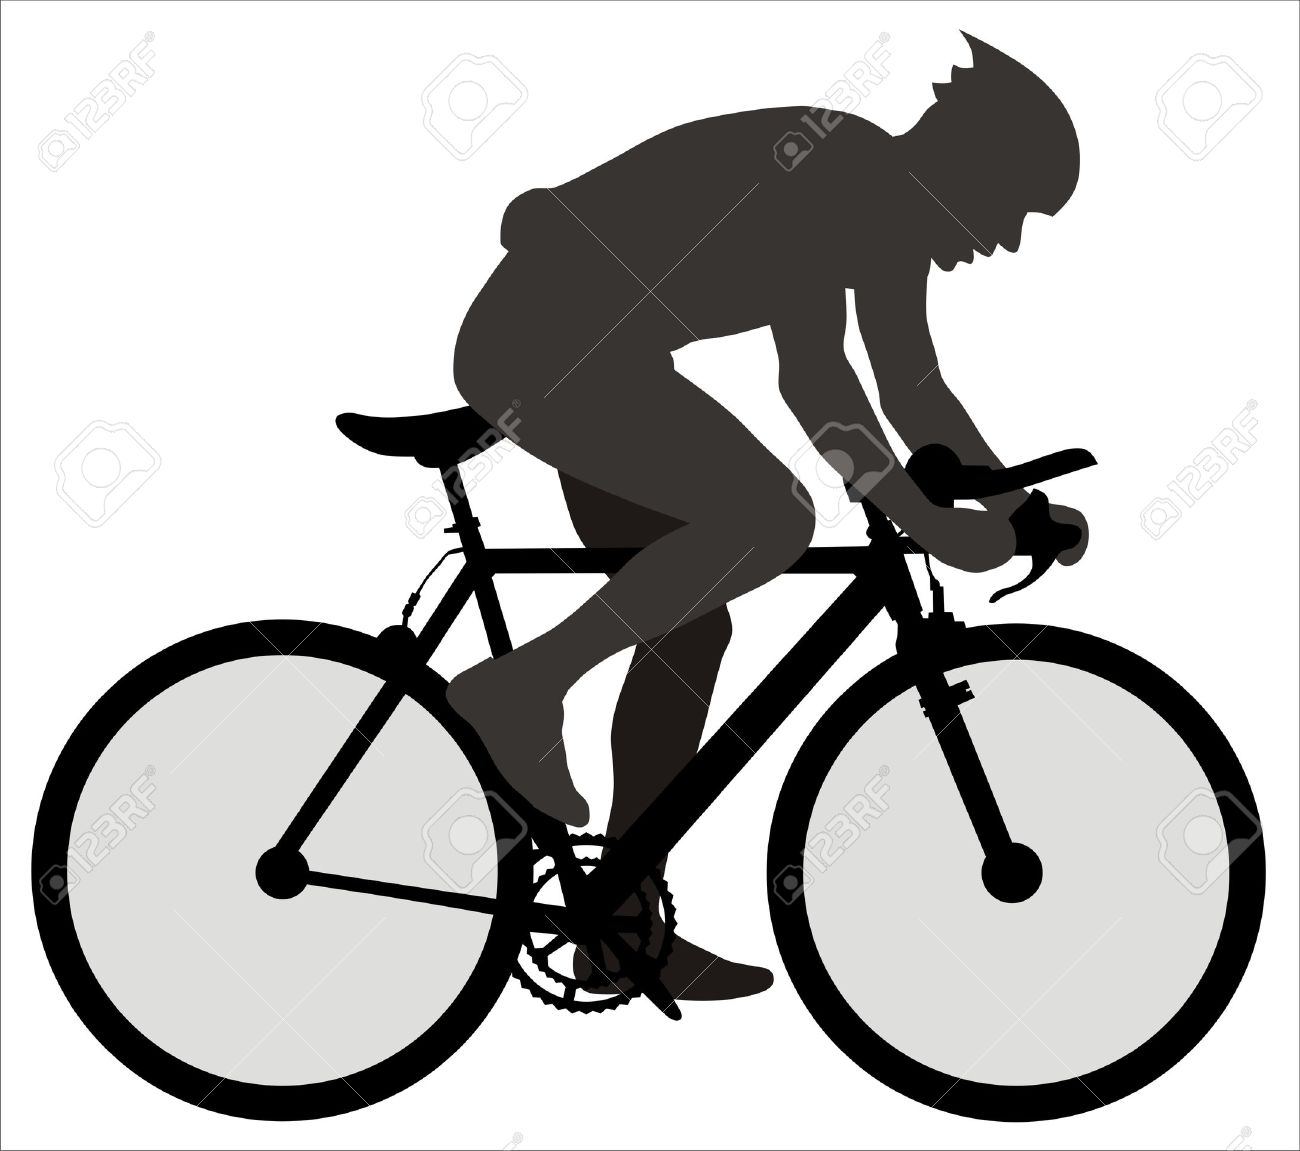 Bike clipart road cycling Cycling clipart Road clipart cycling